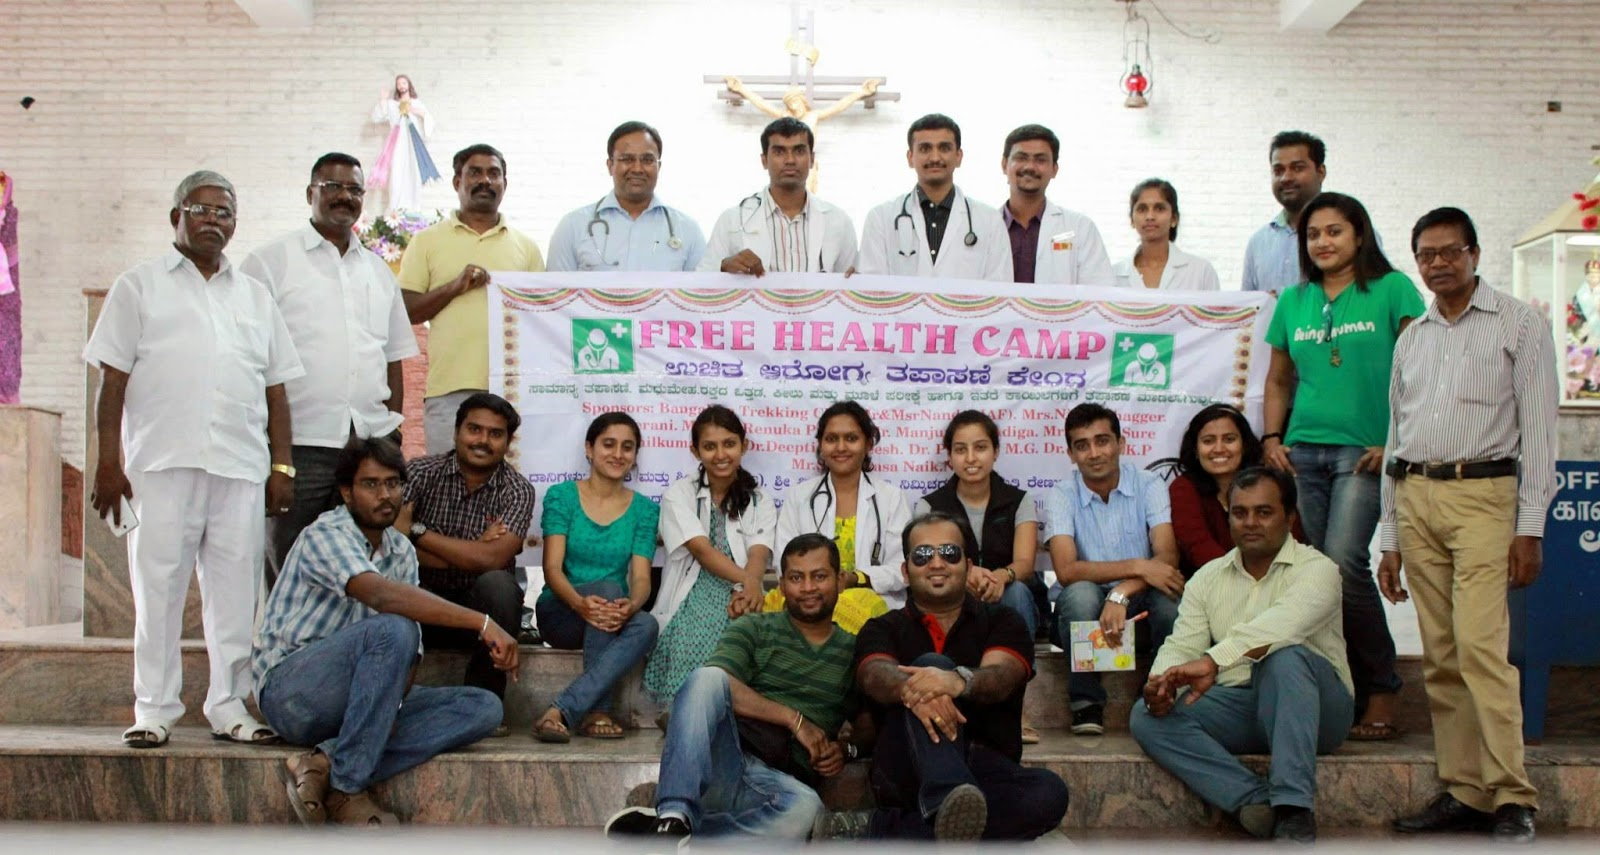 Spreading Smiles   Free Medical Camp: Vol 2 0 - Bangalore